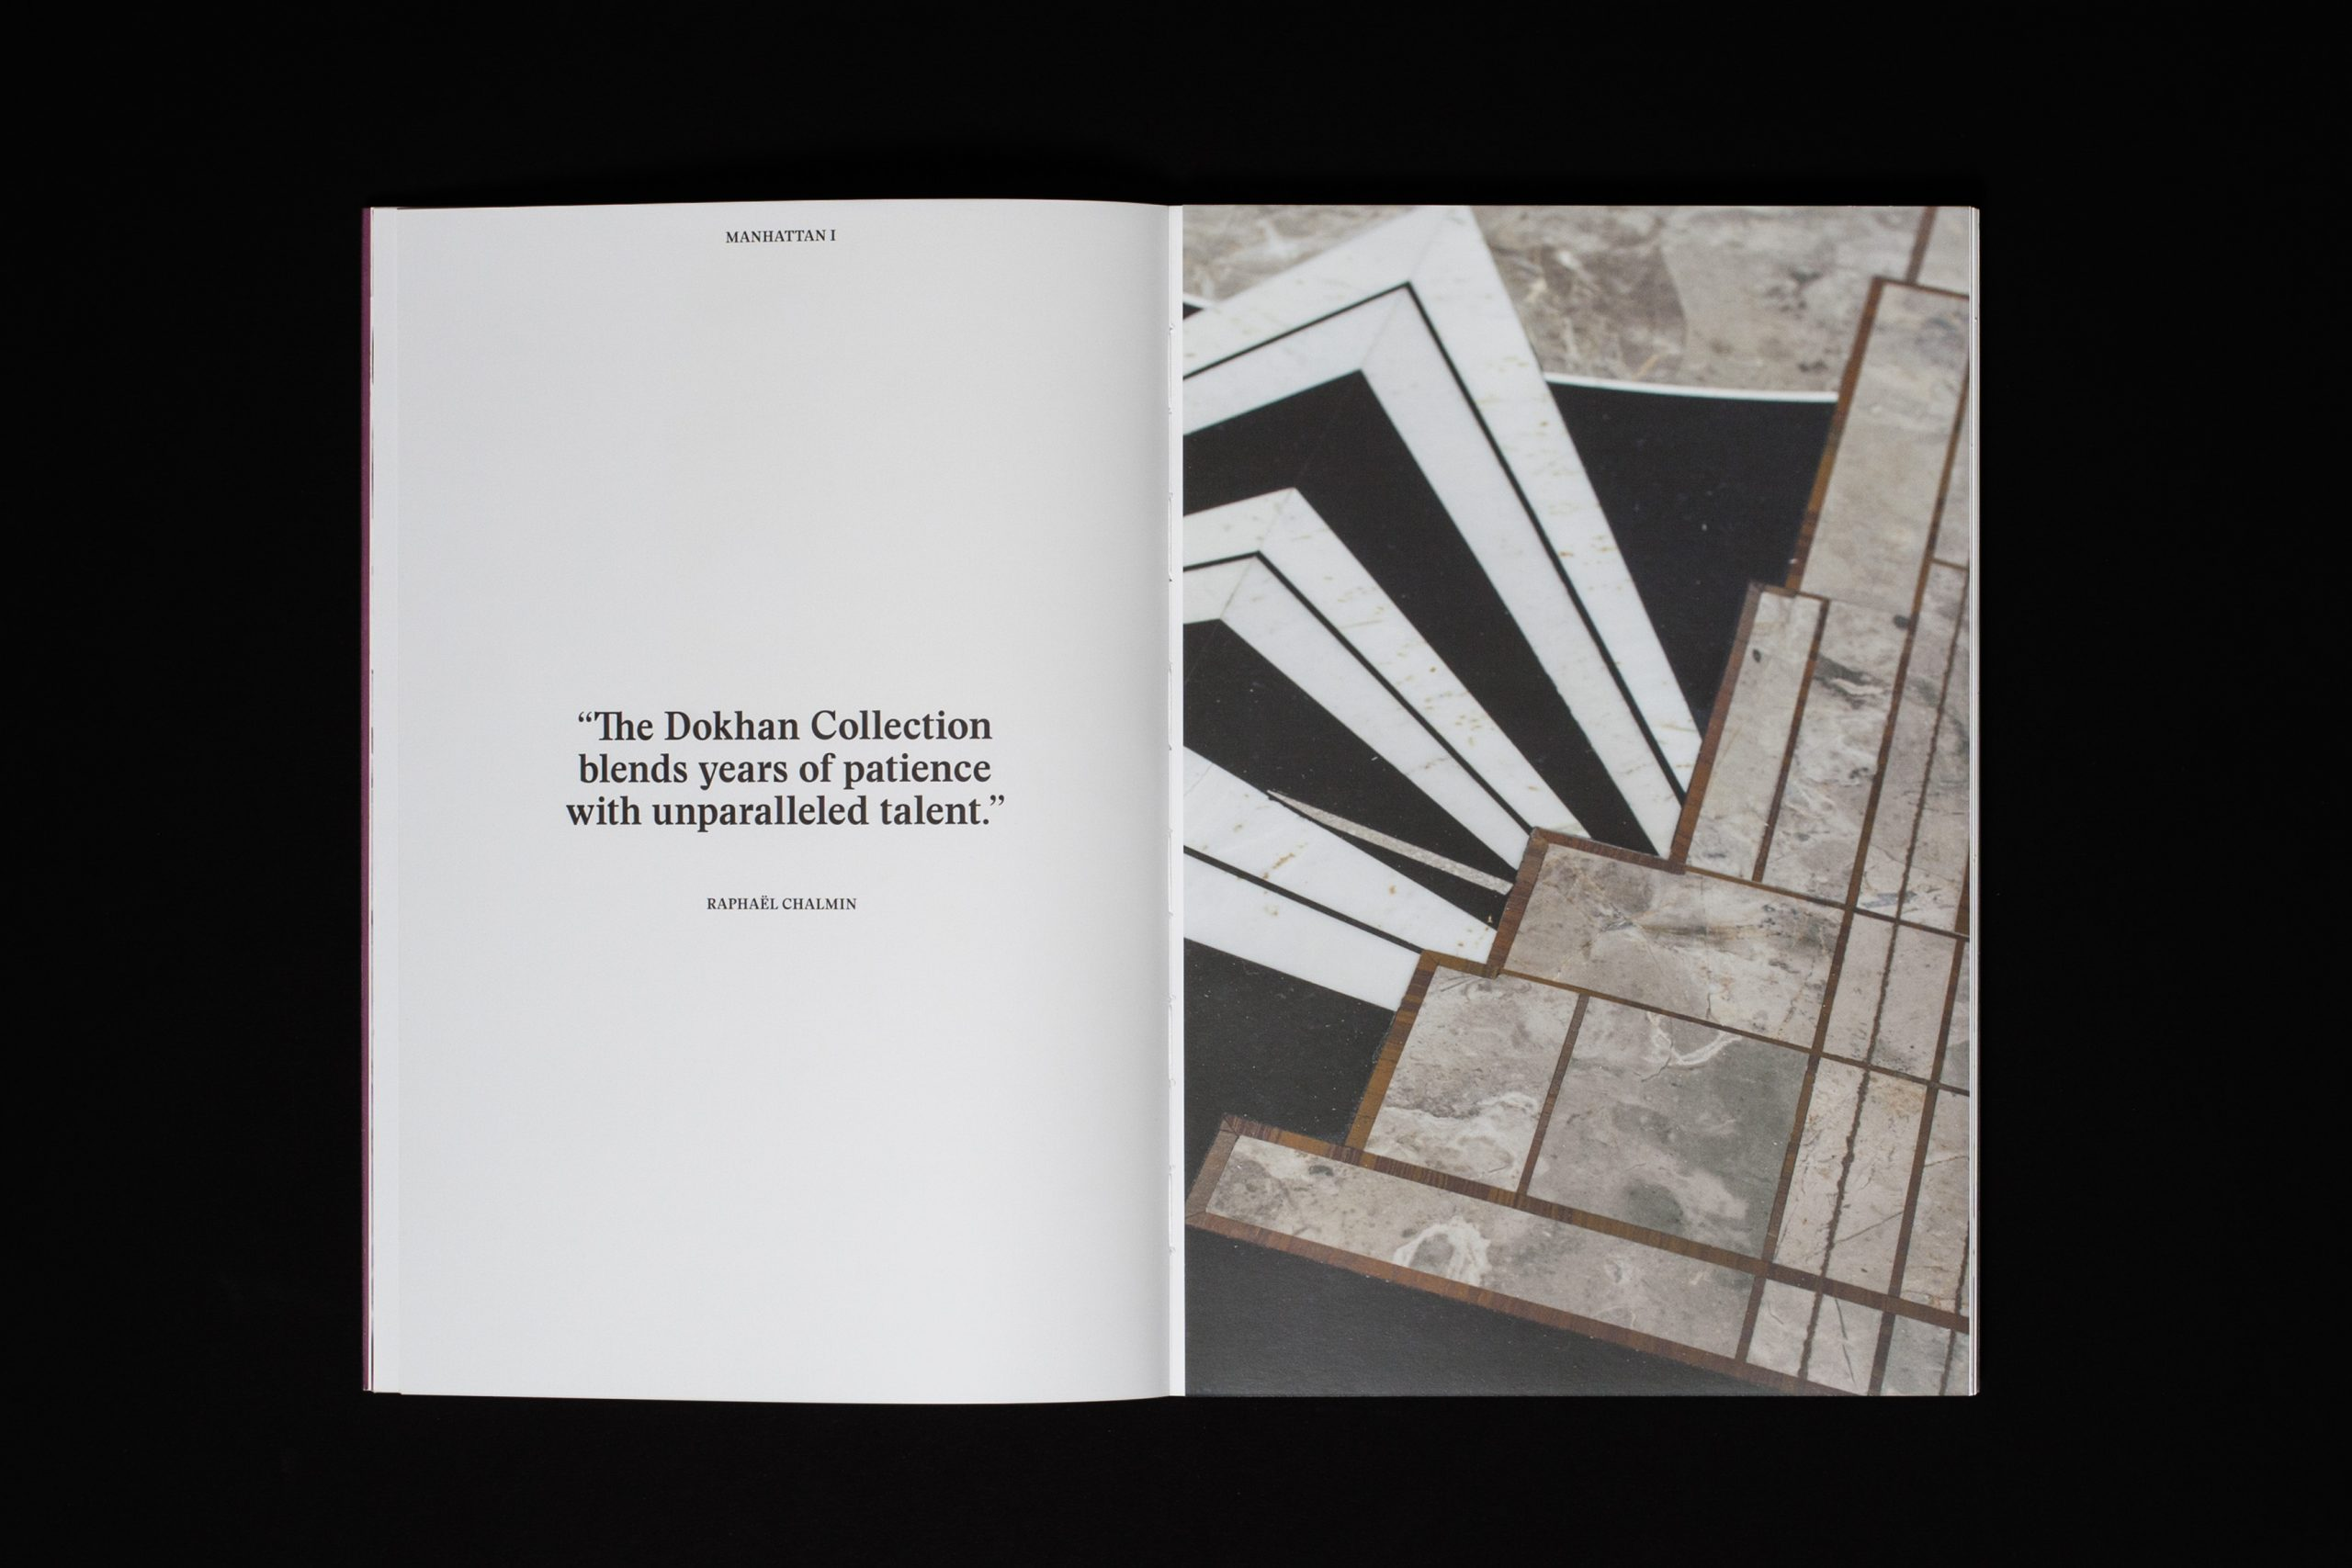 Copywriting for the book The Dokhan Collection